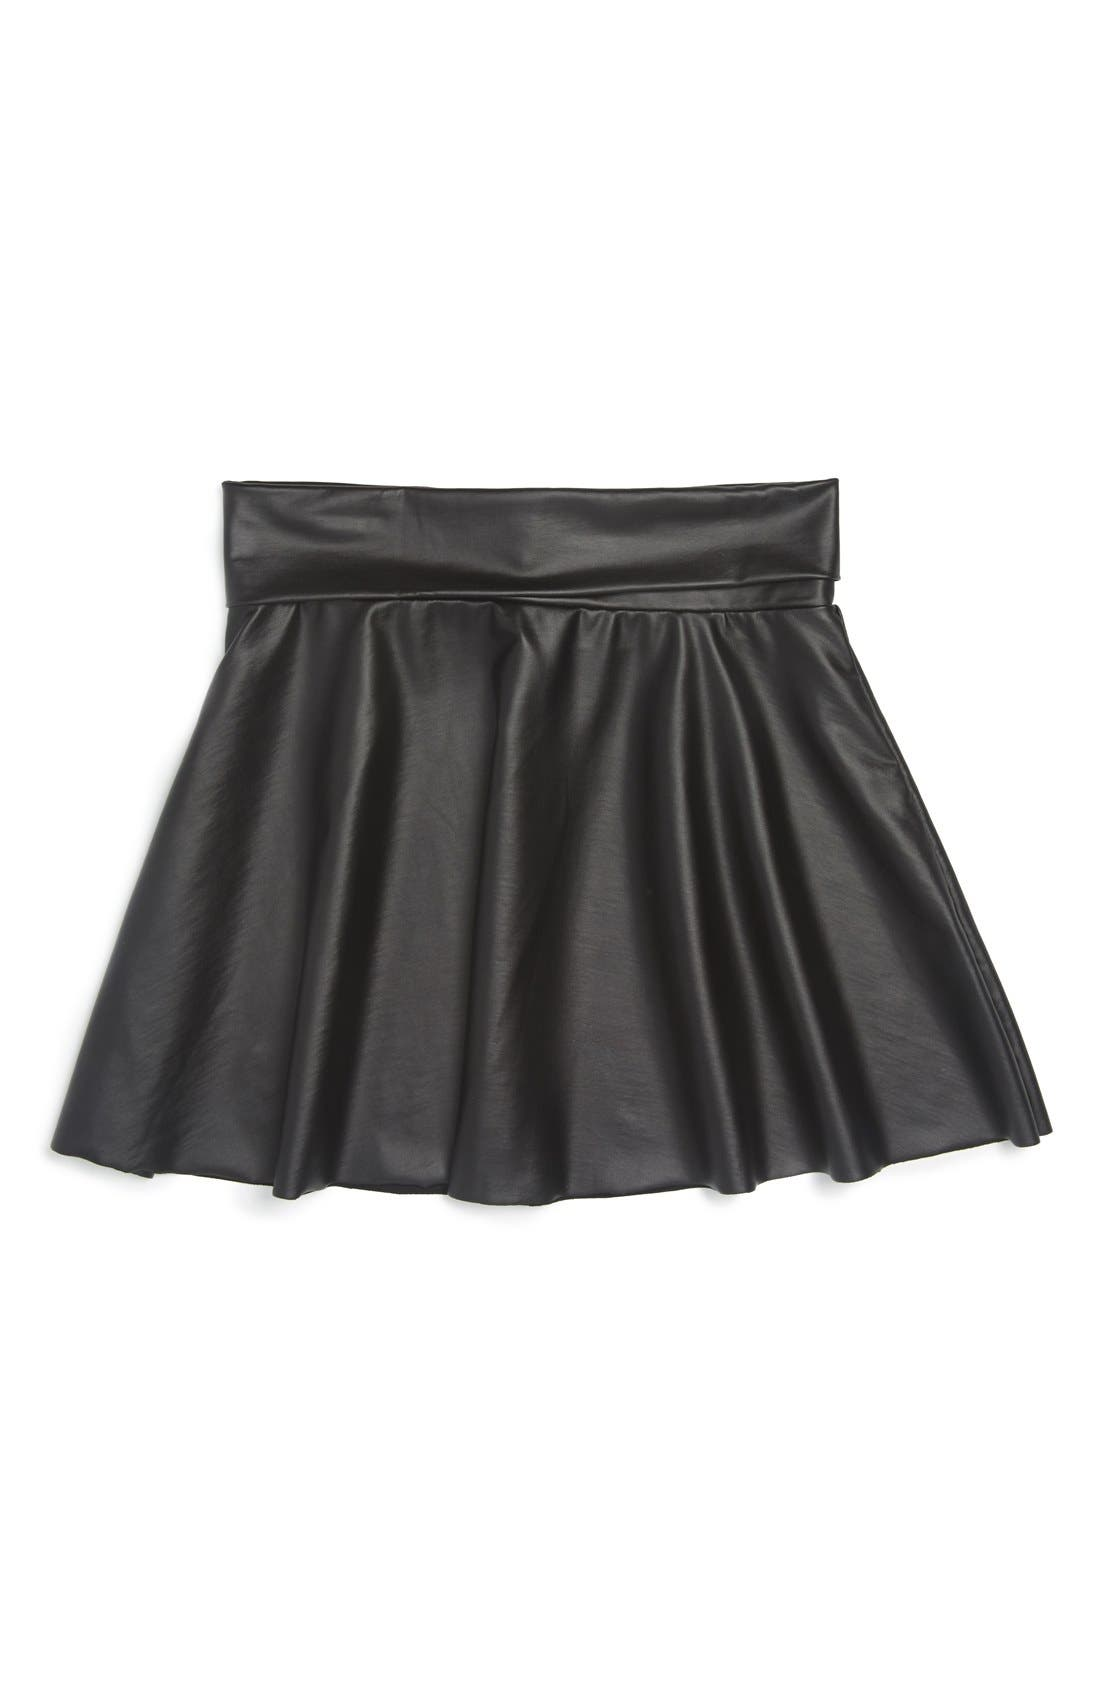 Flowers by Zoe Faux Leather Skater Skirt,                             Main thumbnail 1, color,                             001